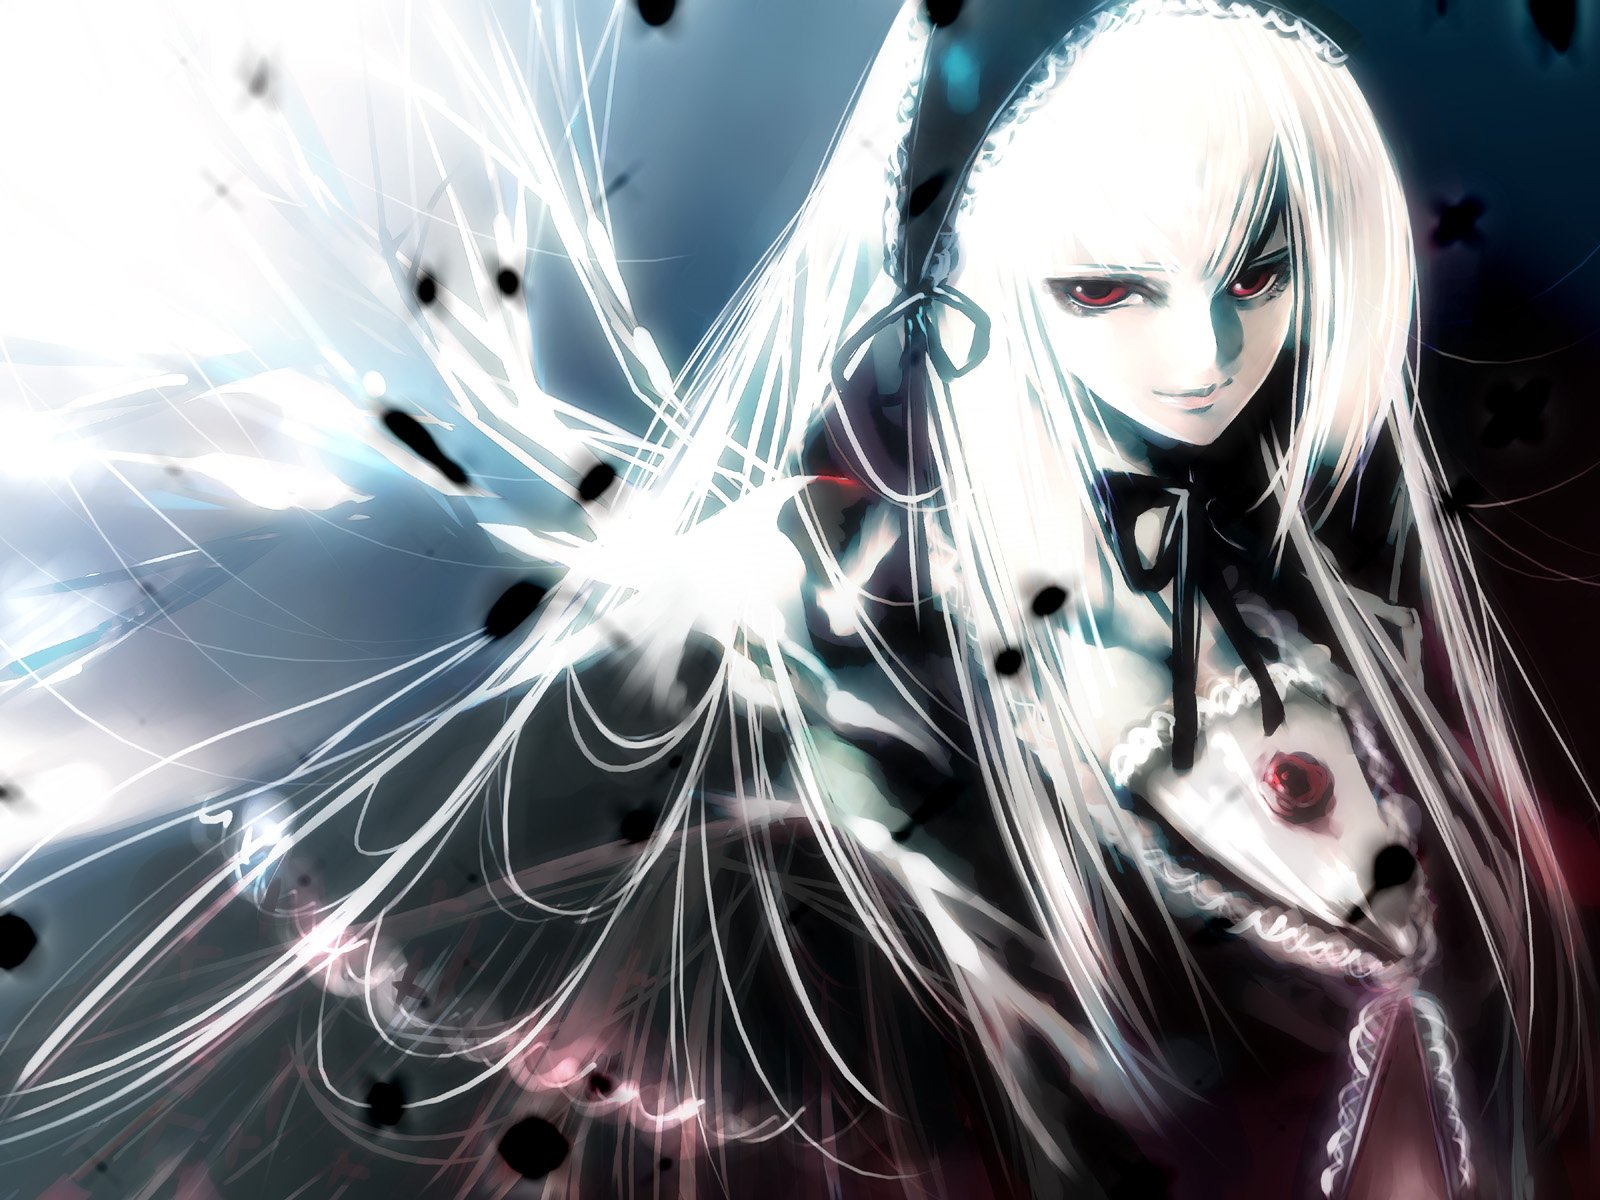 Top anime wallpapers wallpapersafari - Best anime images website ...